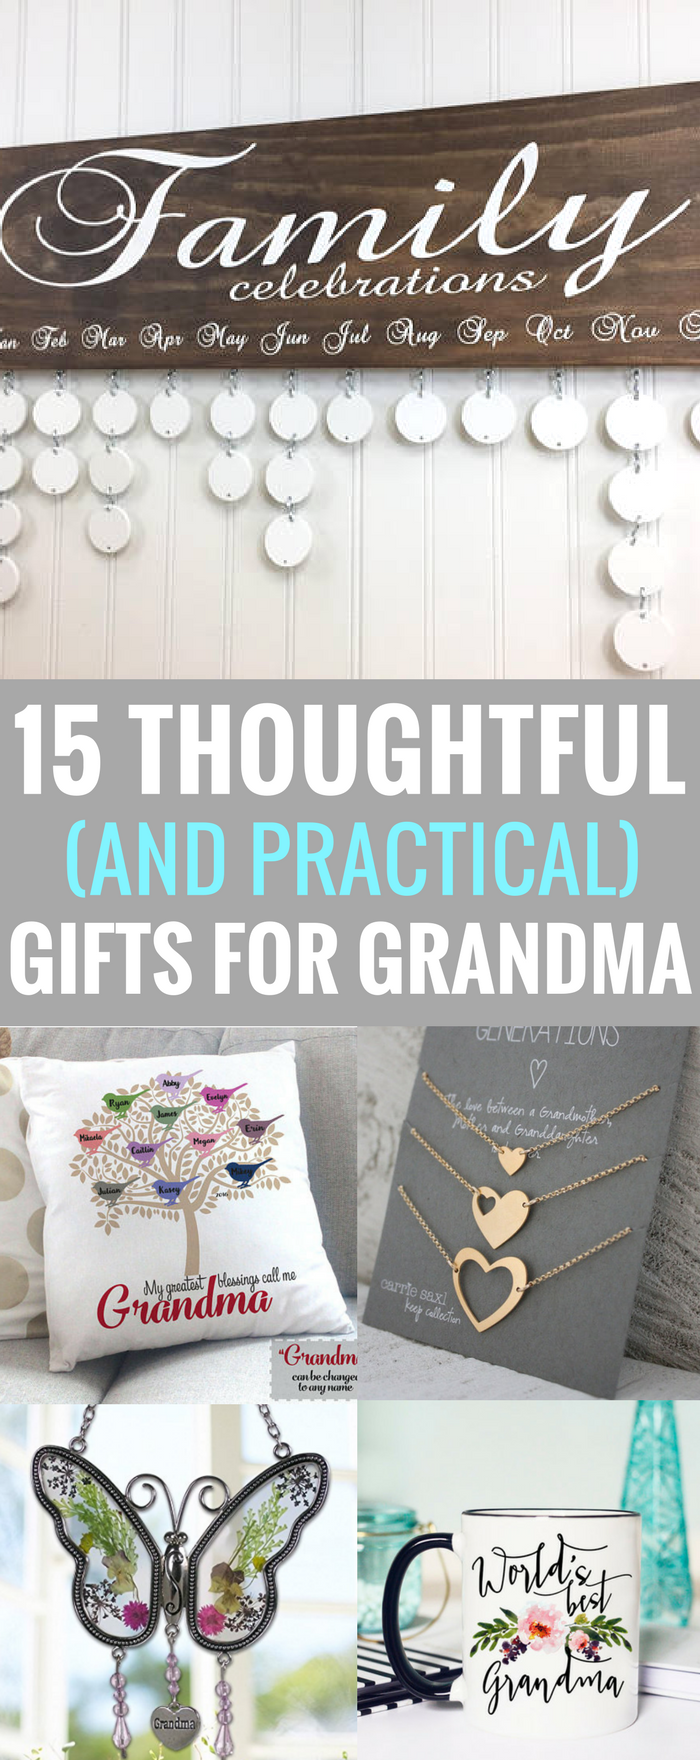 #grandma #mothersday 15 Thoughtful (and Practical) Gifts for Grandma